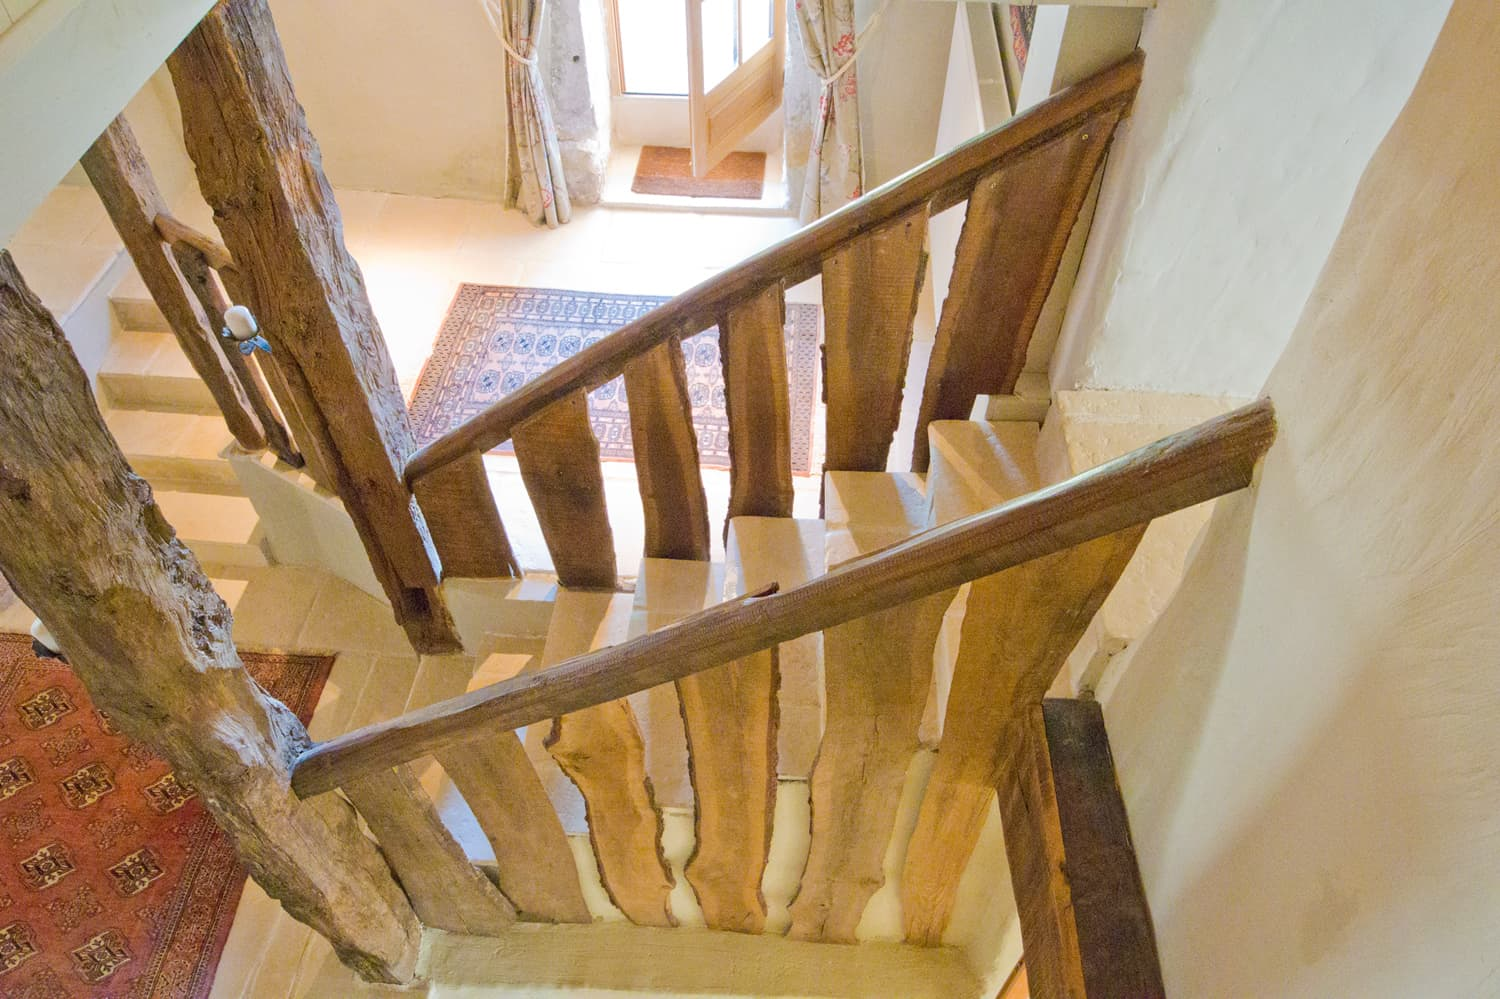 Staircase in South West France self-catering accommodation